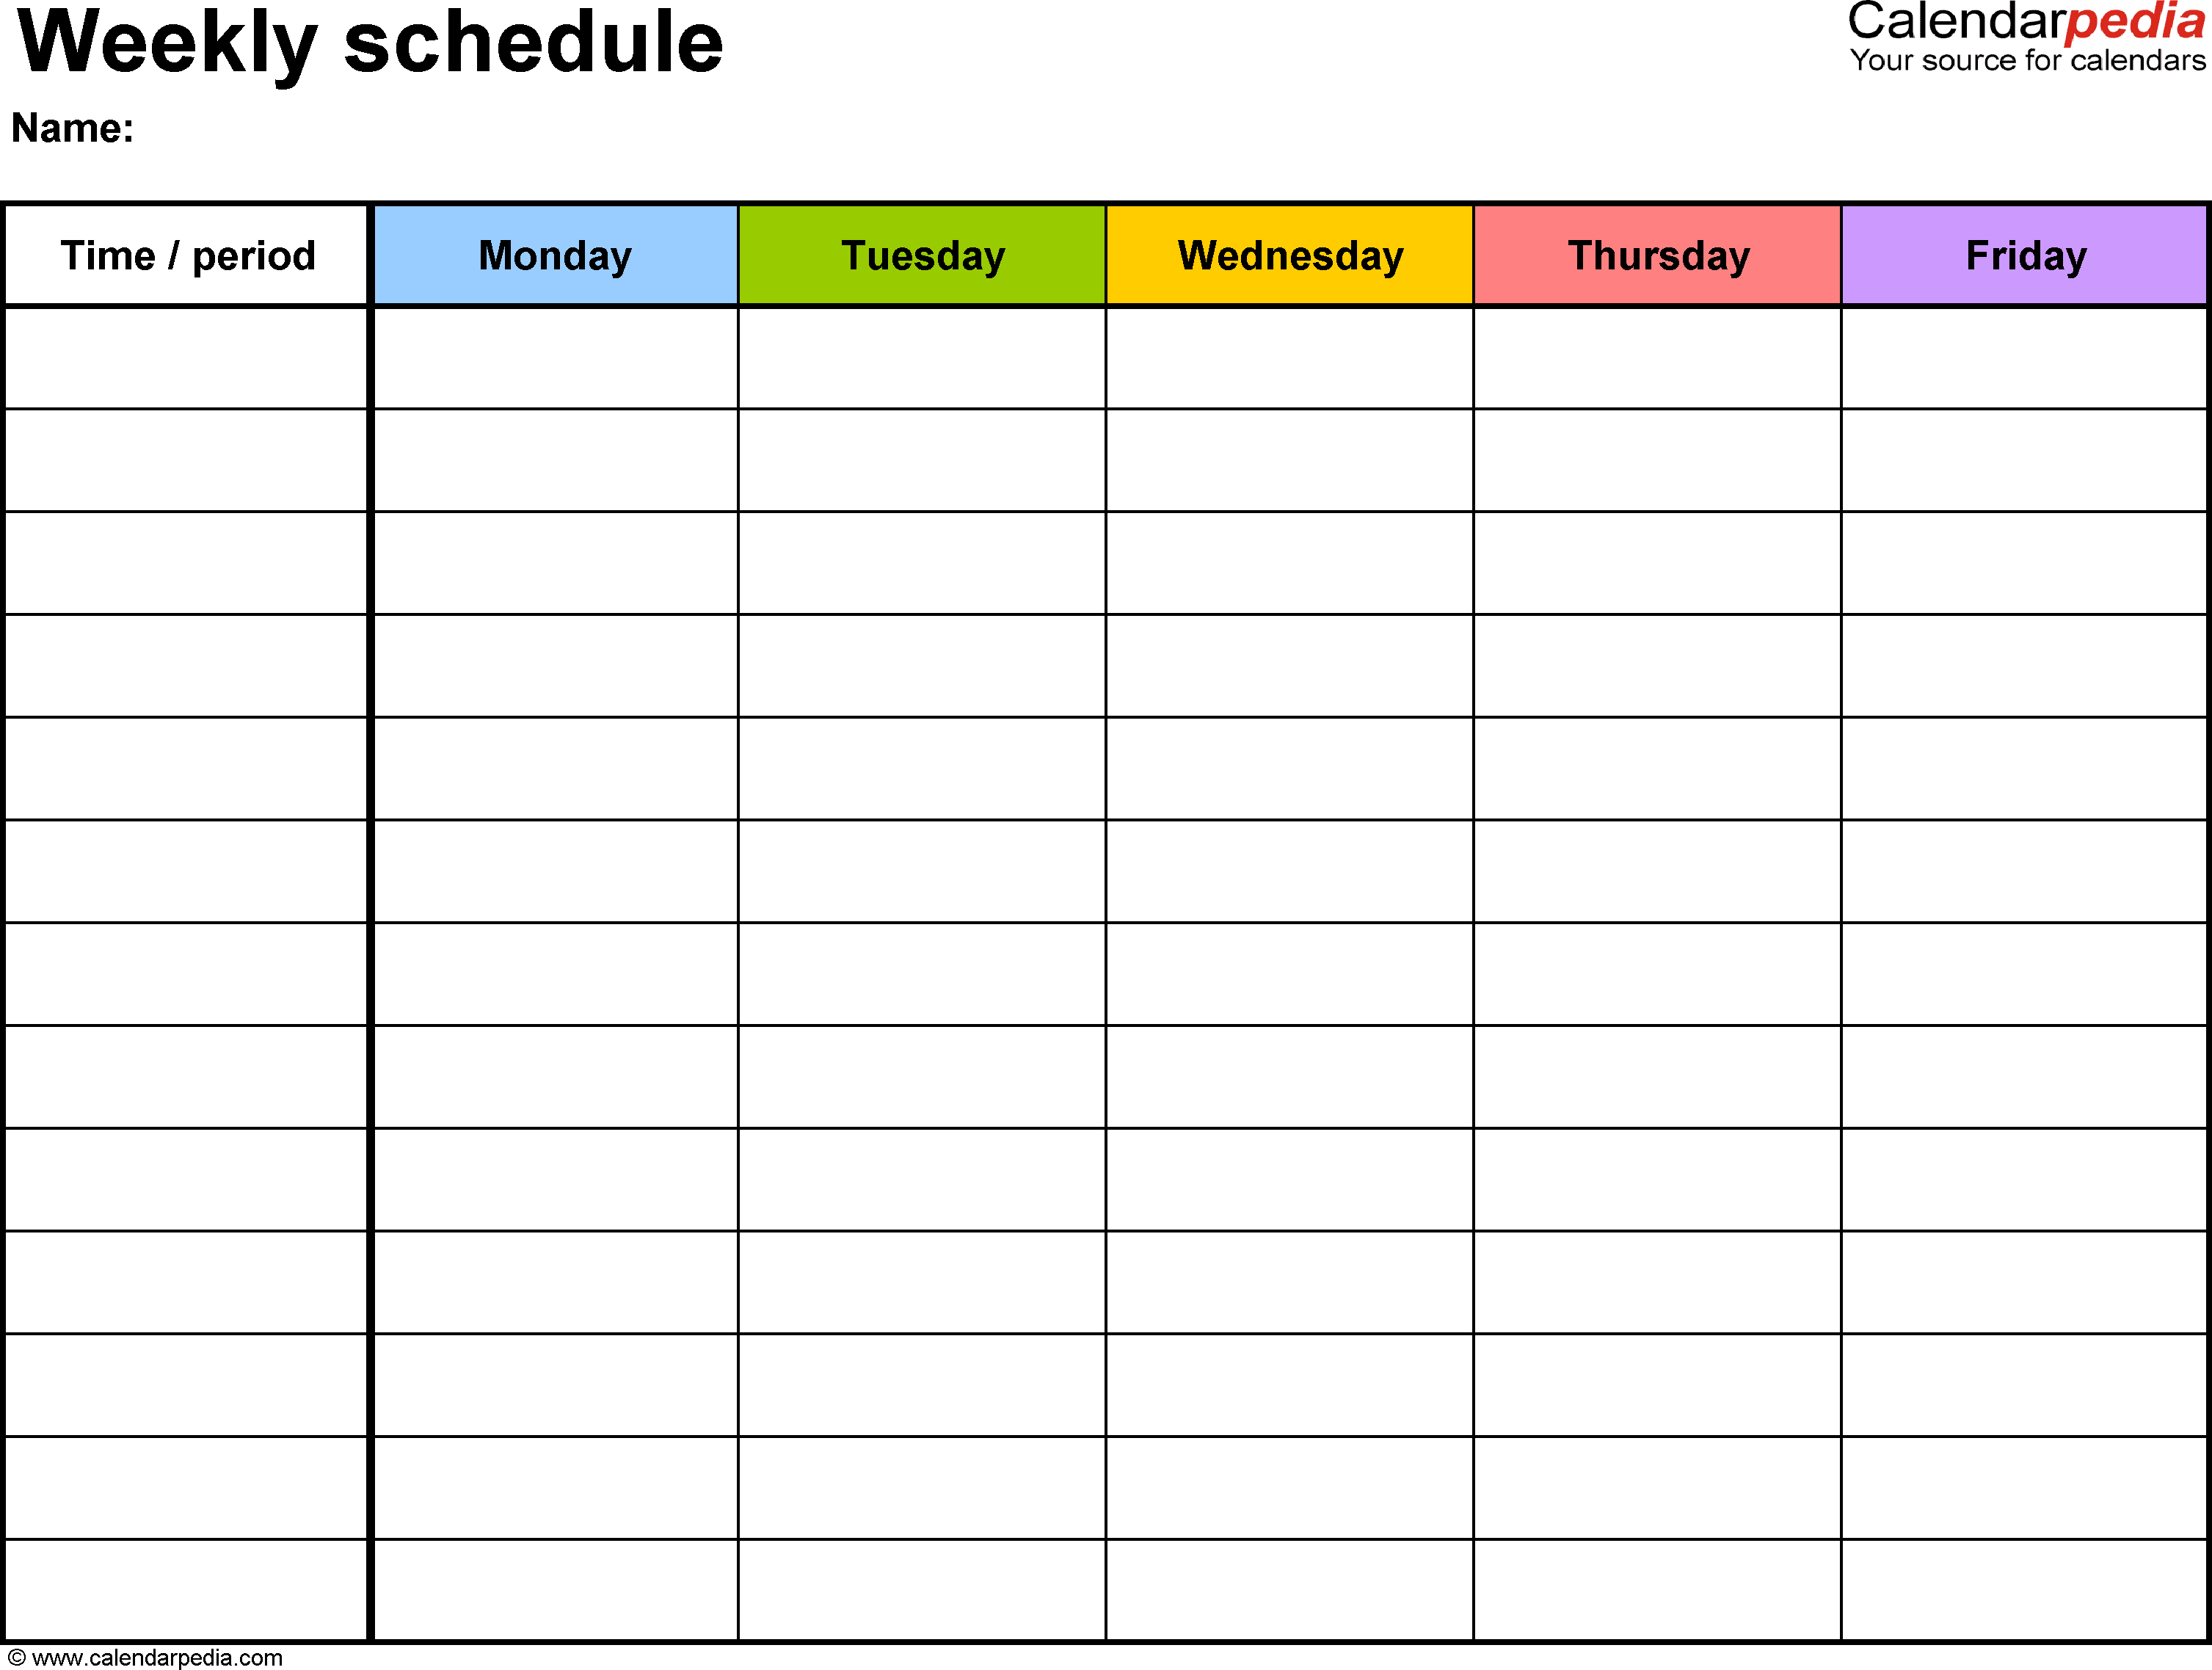 Weekly Schedule Template For Word Version 1: Landscape, 1 Saturday To Friday Weekly Calendar